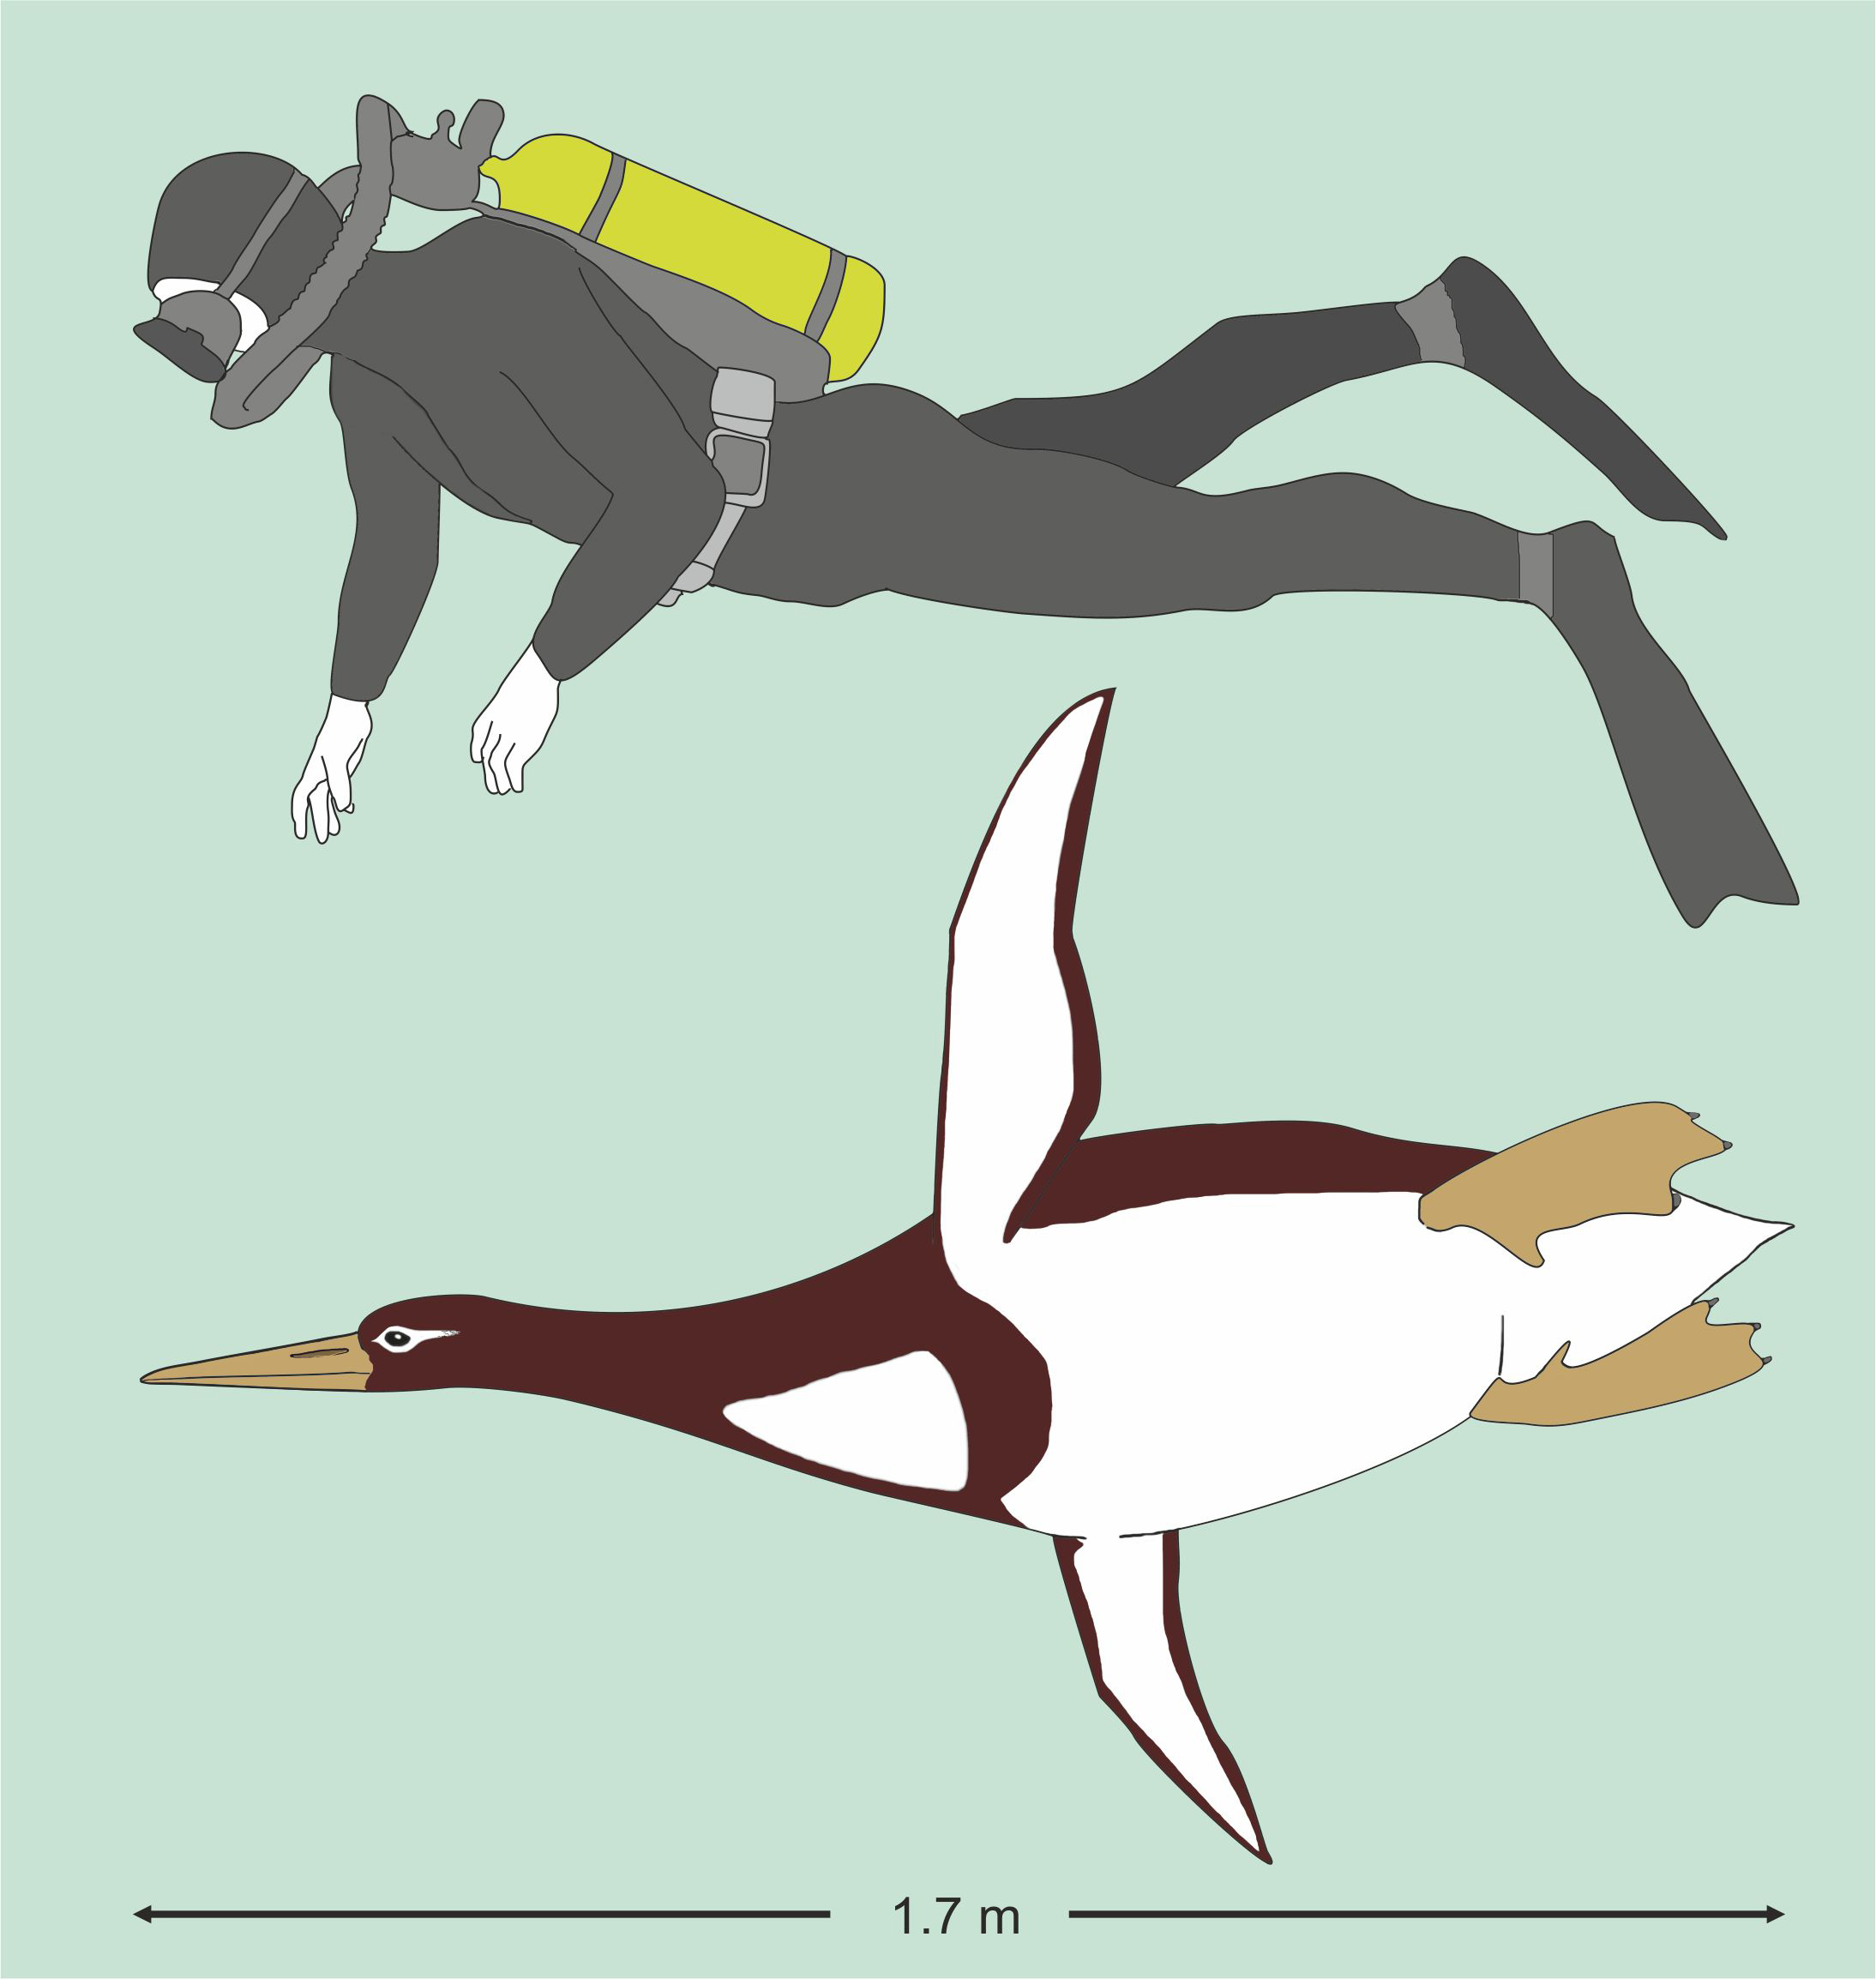 The newly identified extinct giant penguin measures 1.77m long (Senckenberg Research Institute/PA)